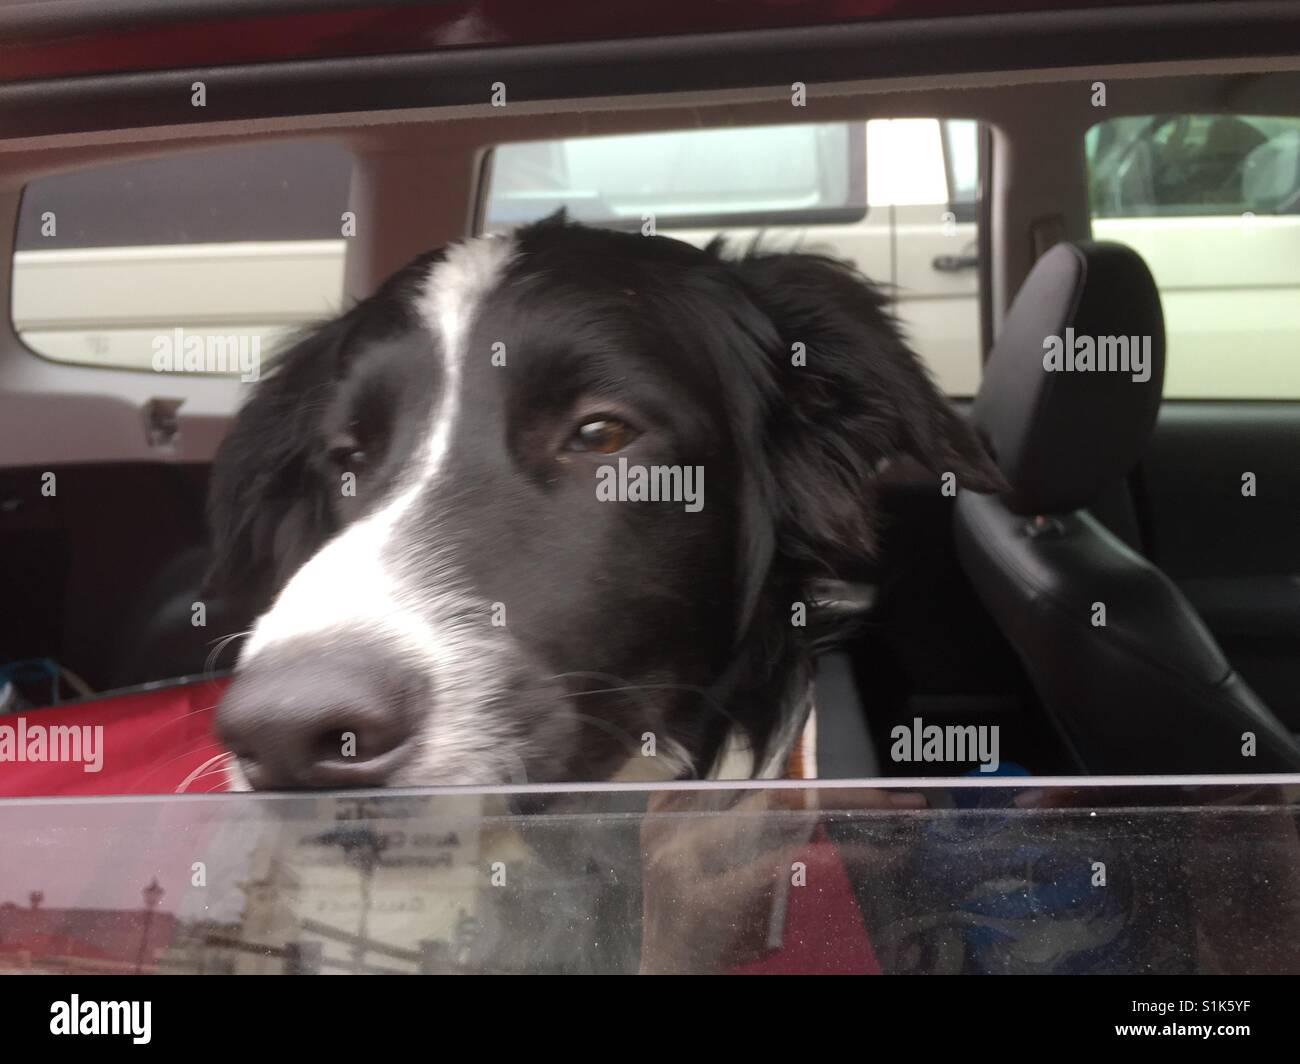 Dog waiting in car - Stock Image